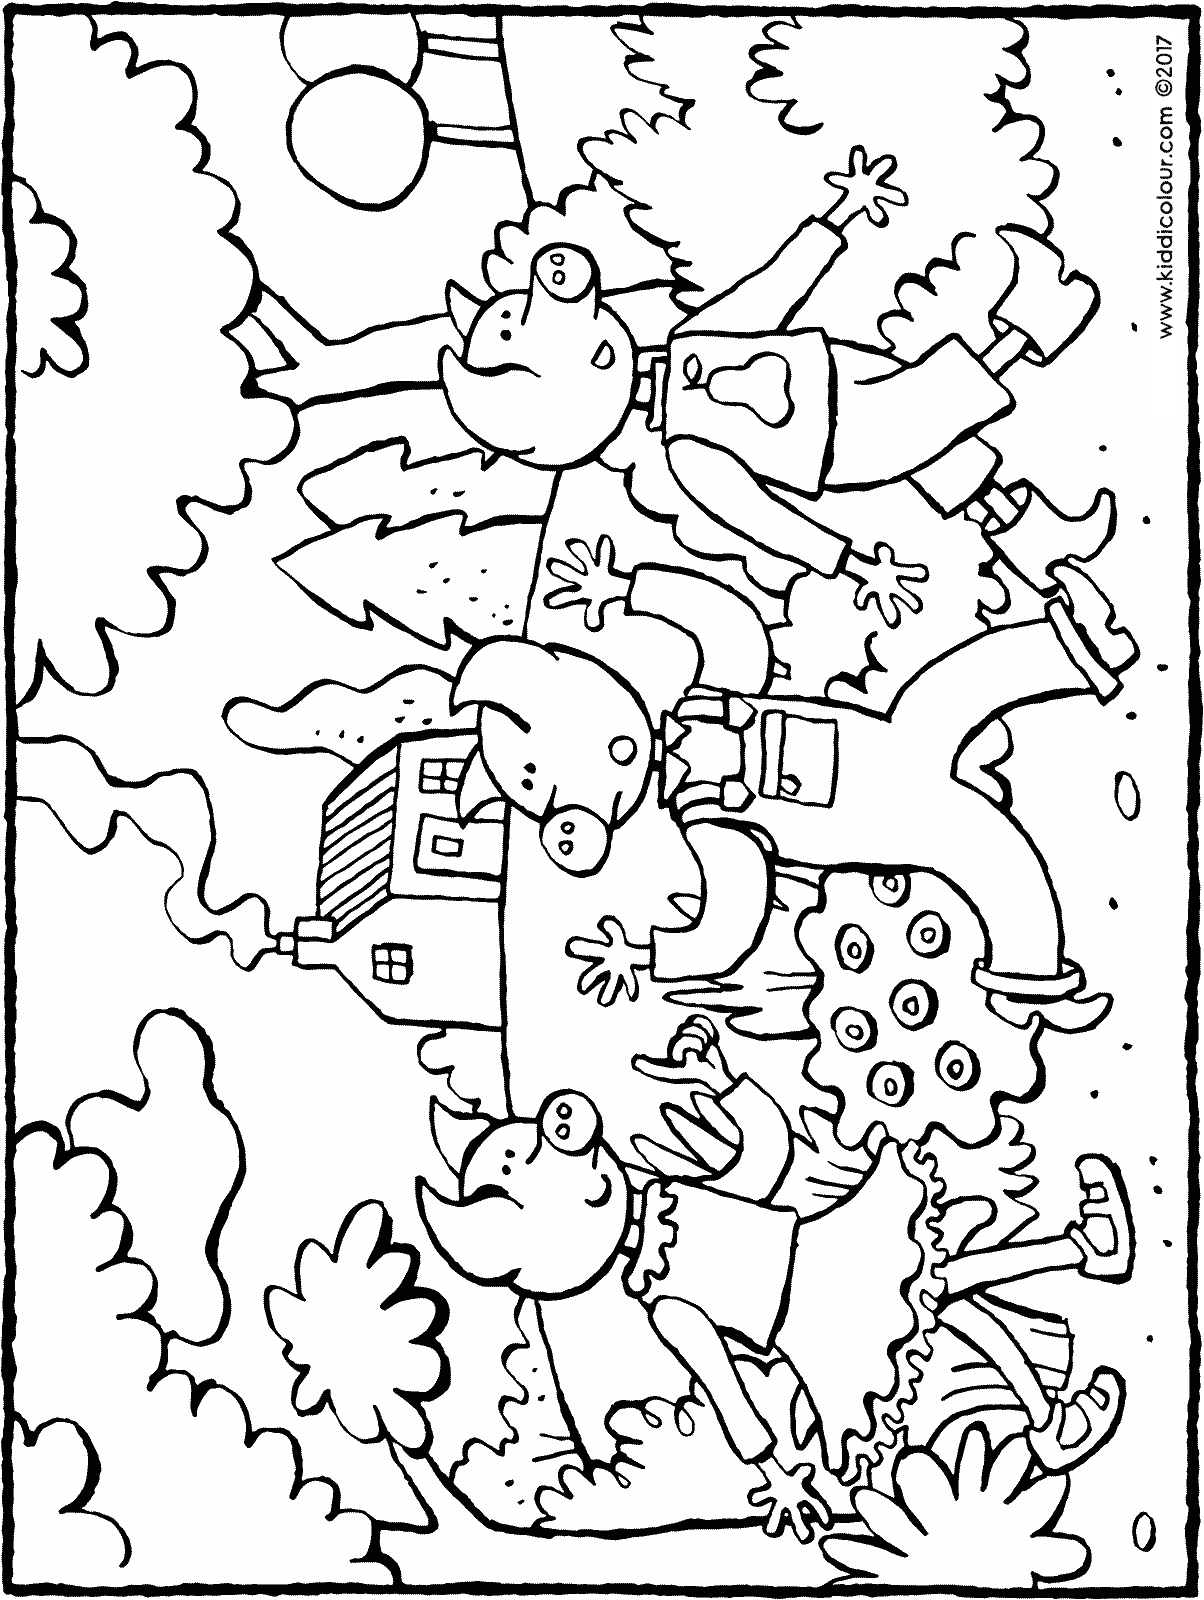 the three little pigs in the woods colouring page drawing picture 01H